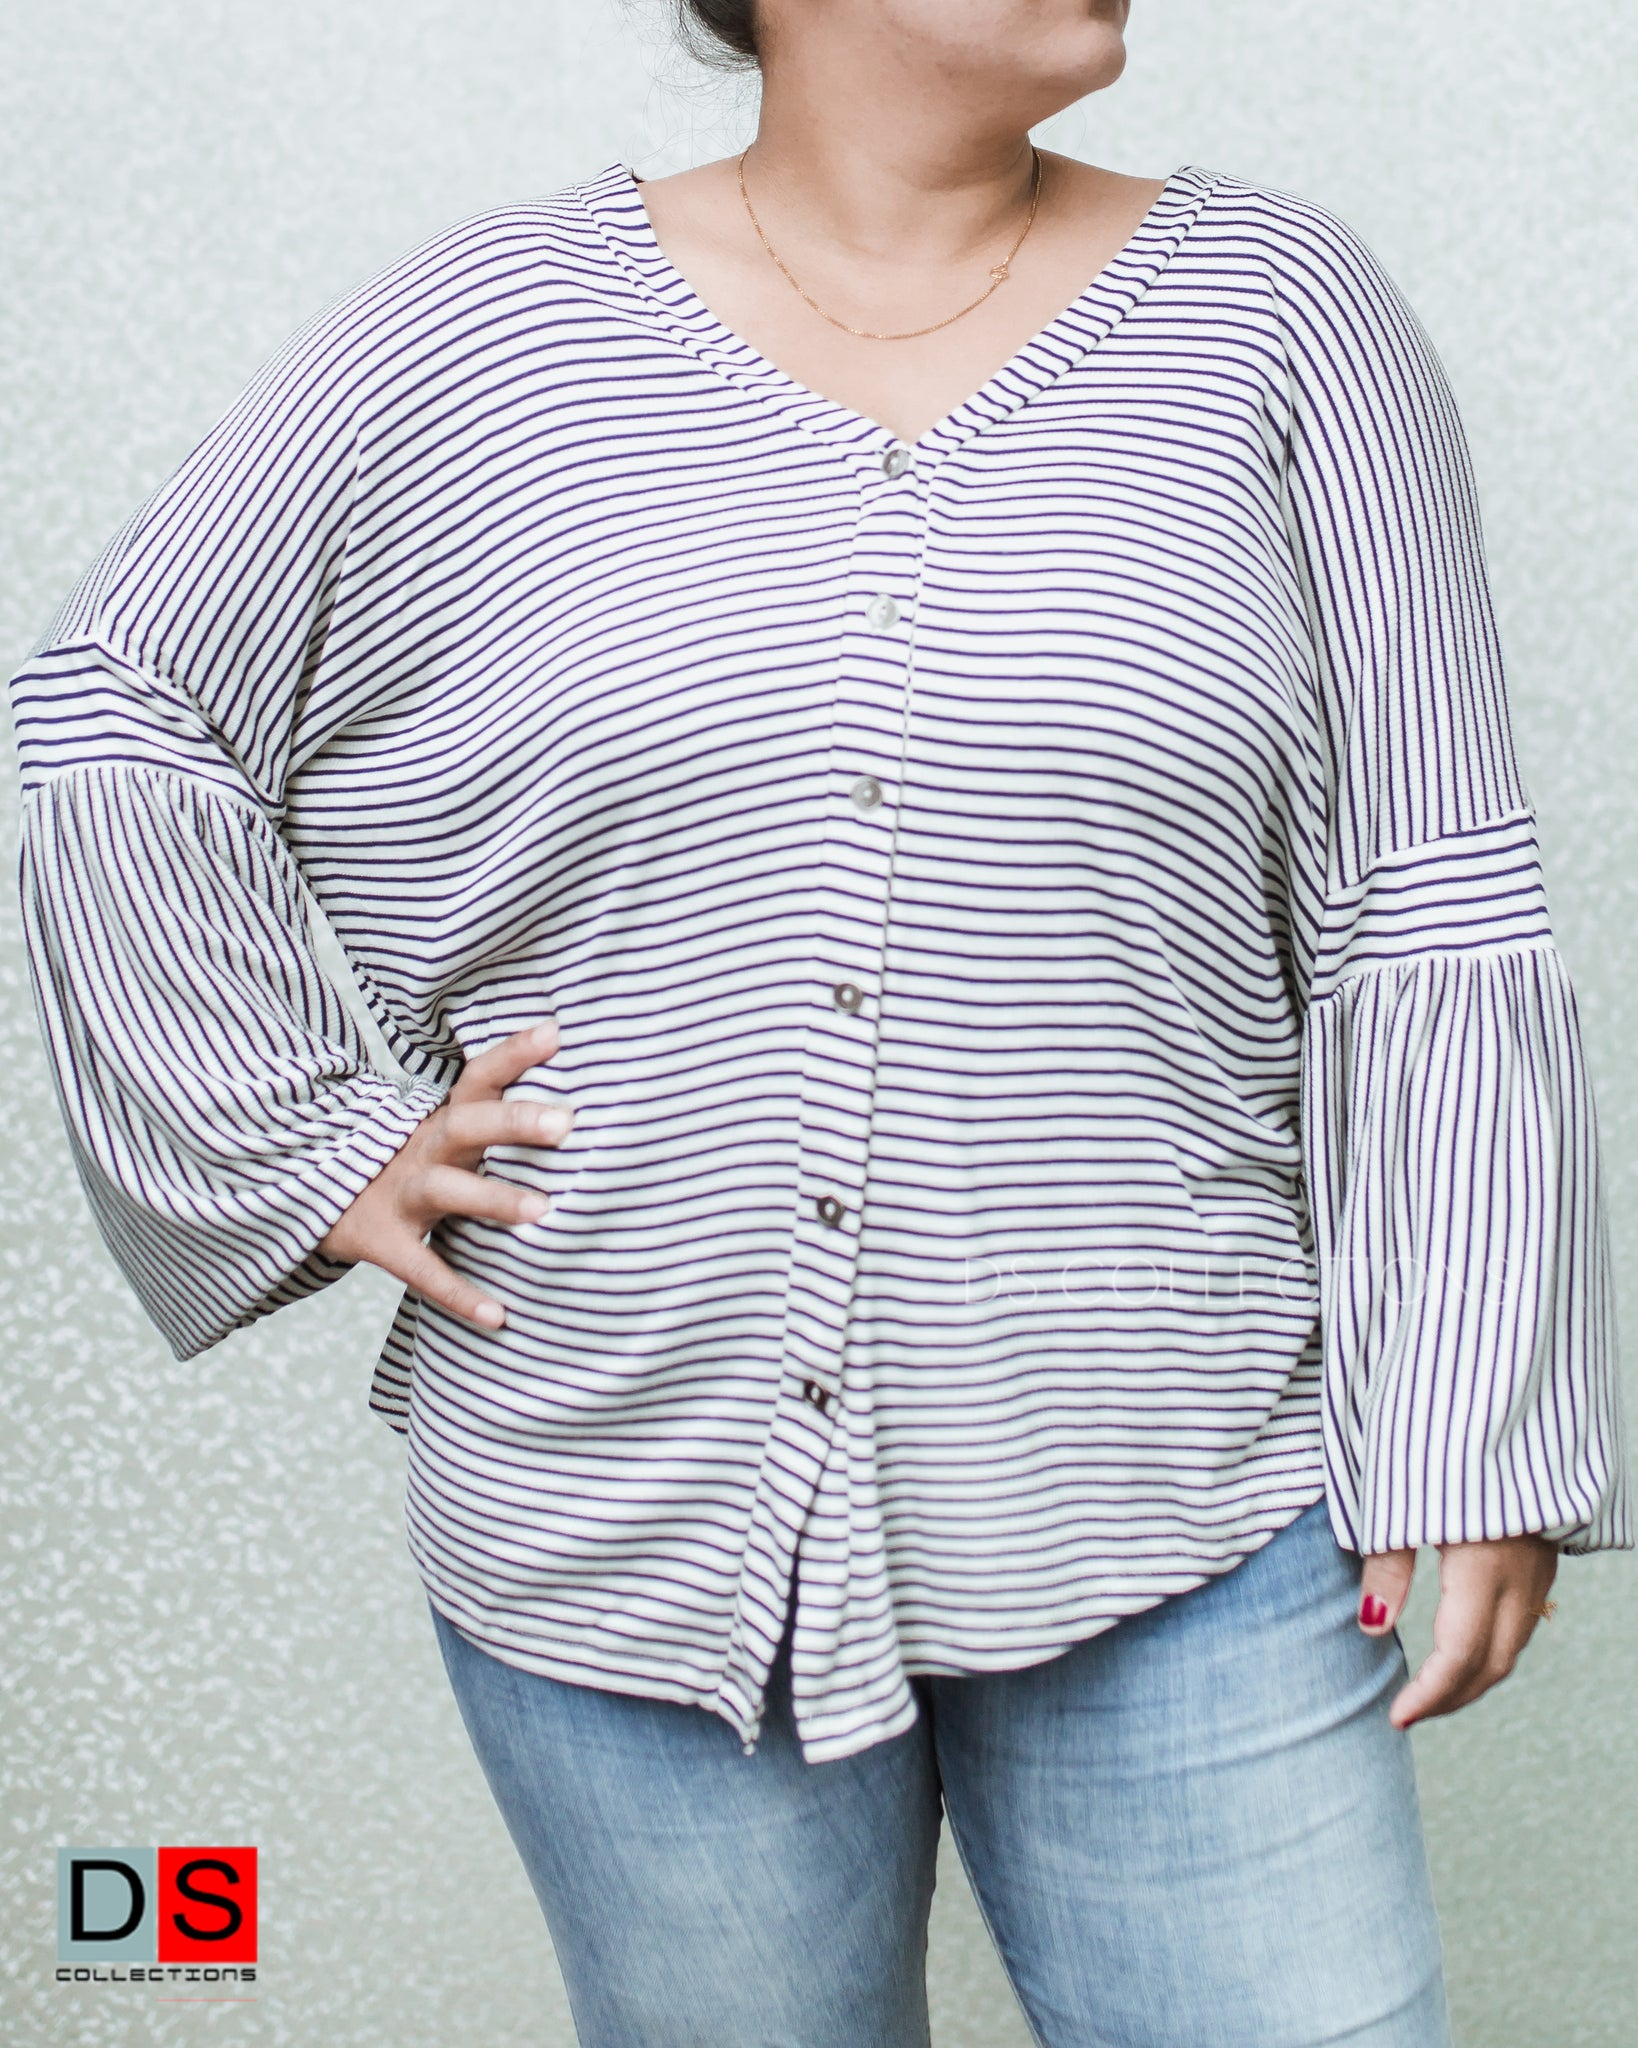 Women's Top -Stripe Button-Up Balloon Sleeve Top | DS Collections Nepal